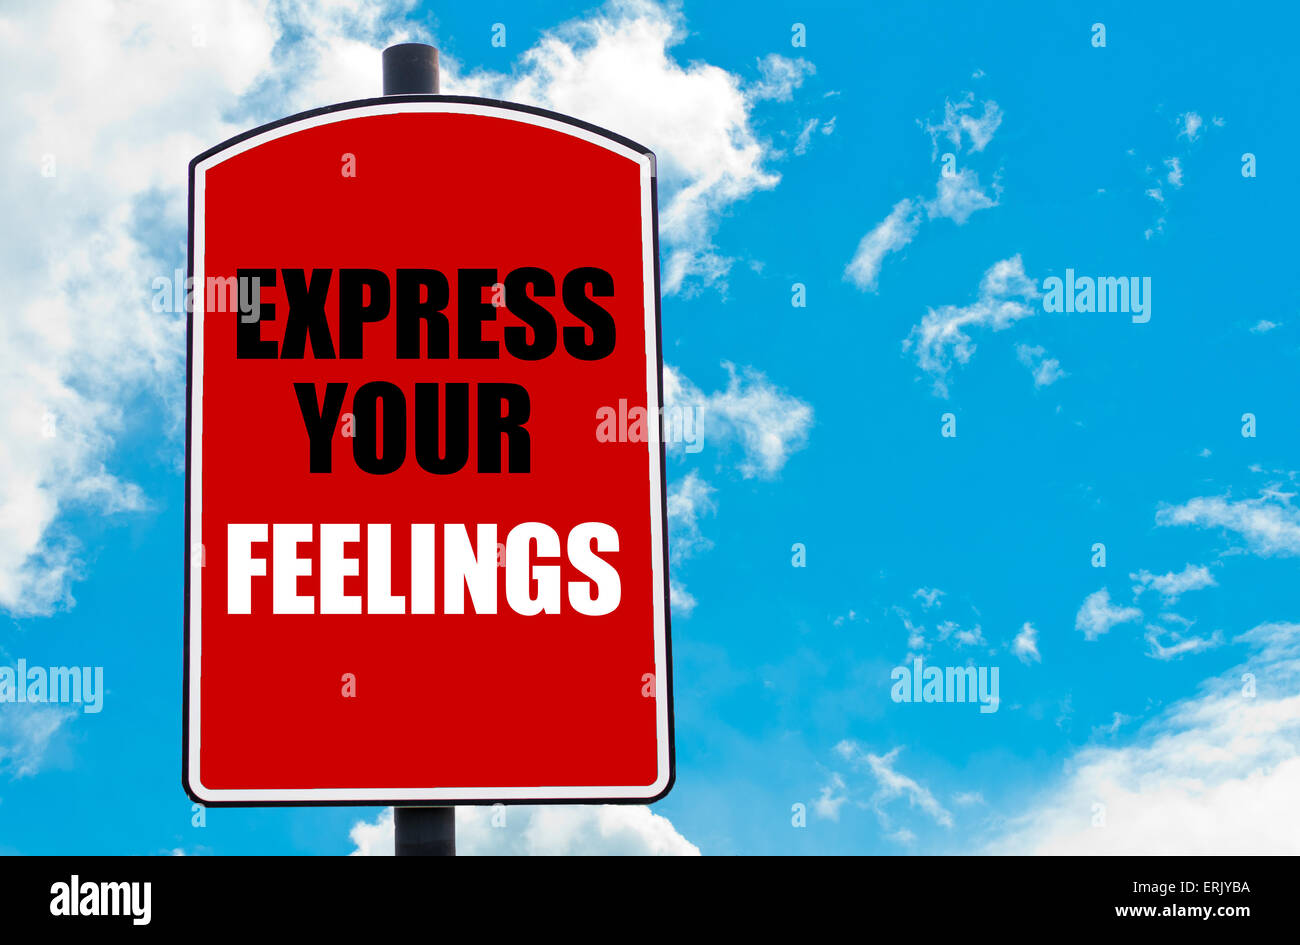 Express Your Feelings motivational quote written on red road sign isolated over clear blue sky background. - Stock Image